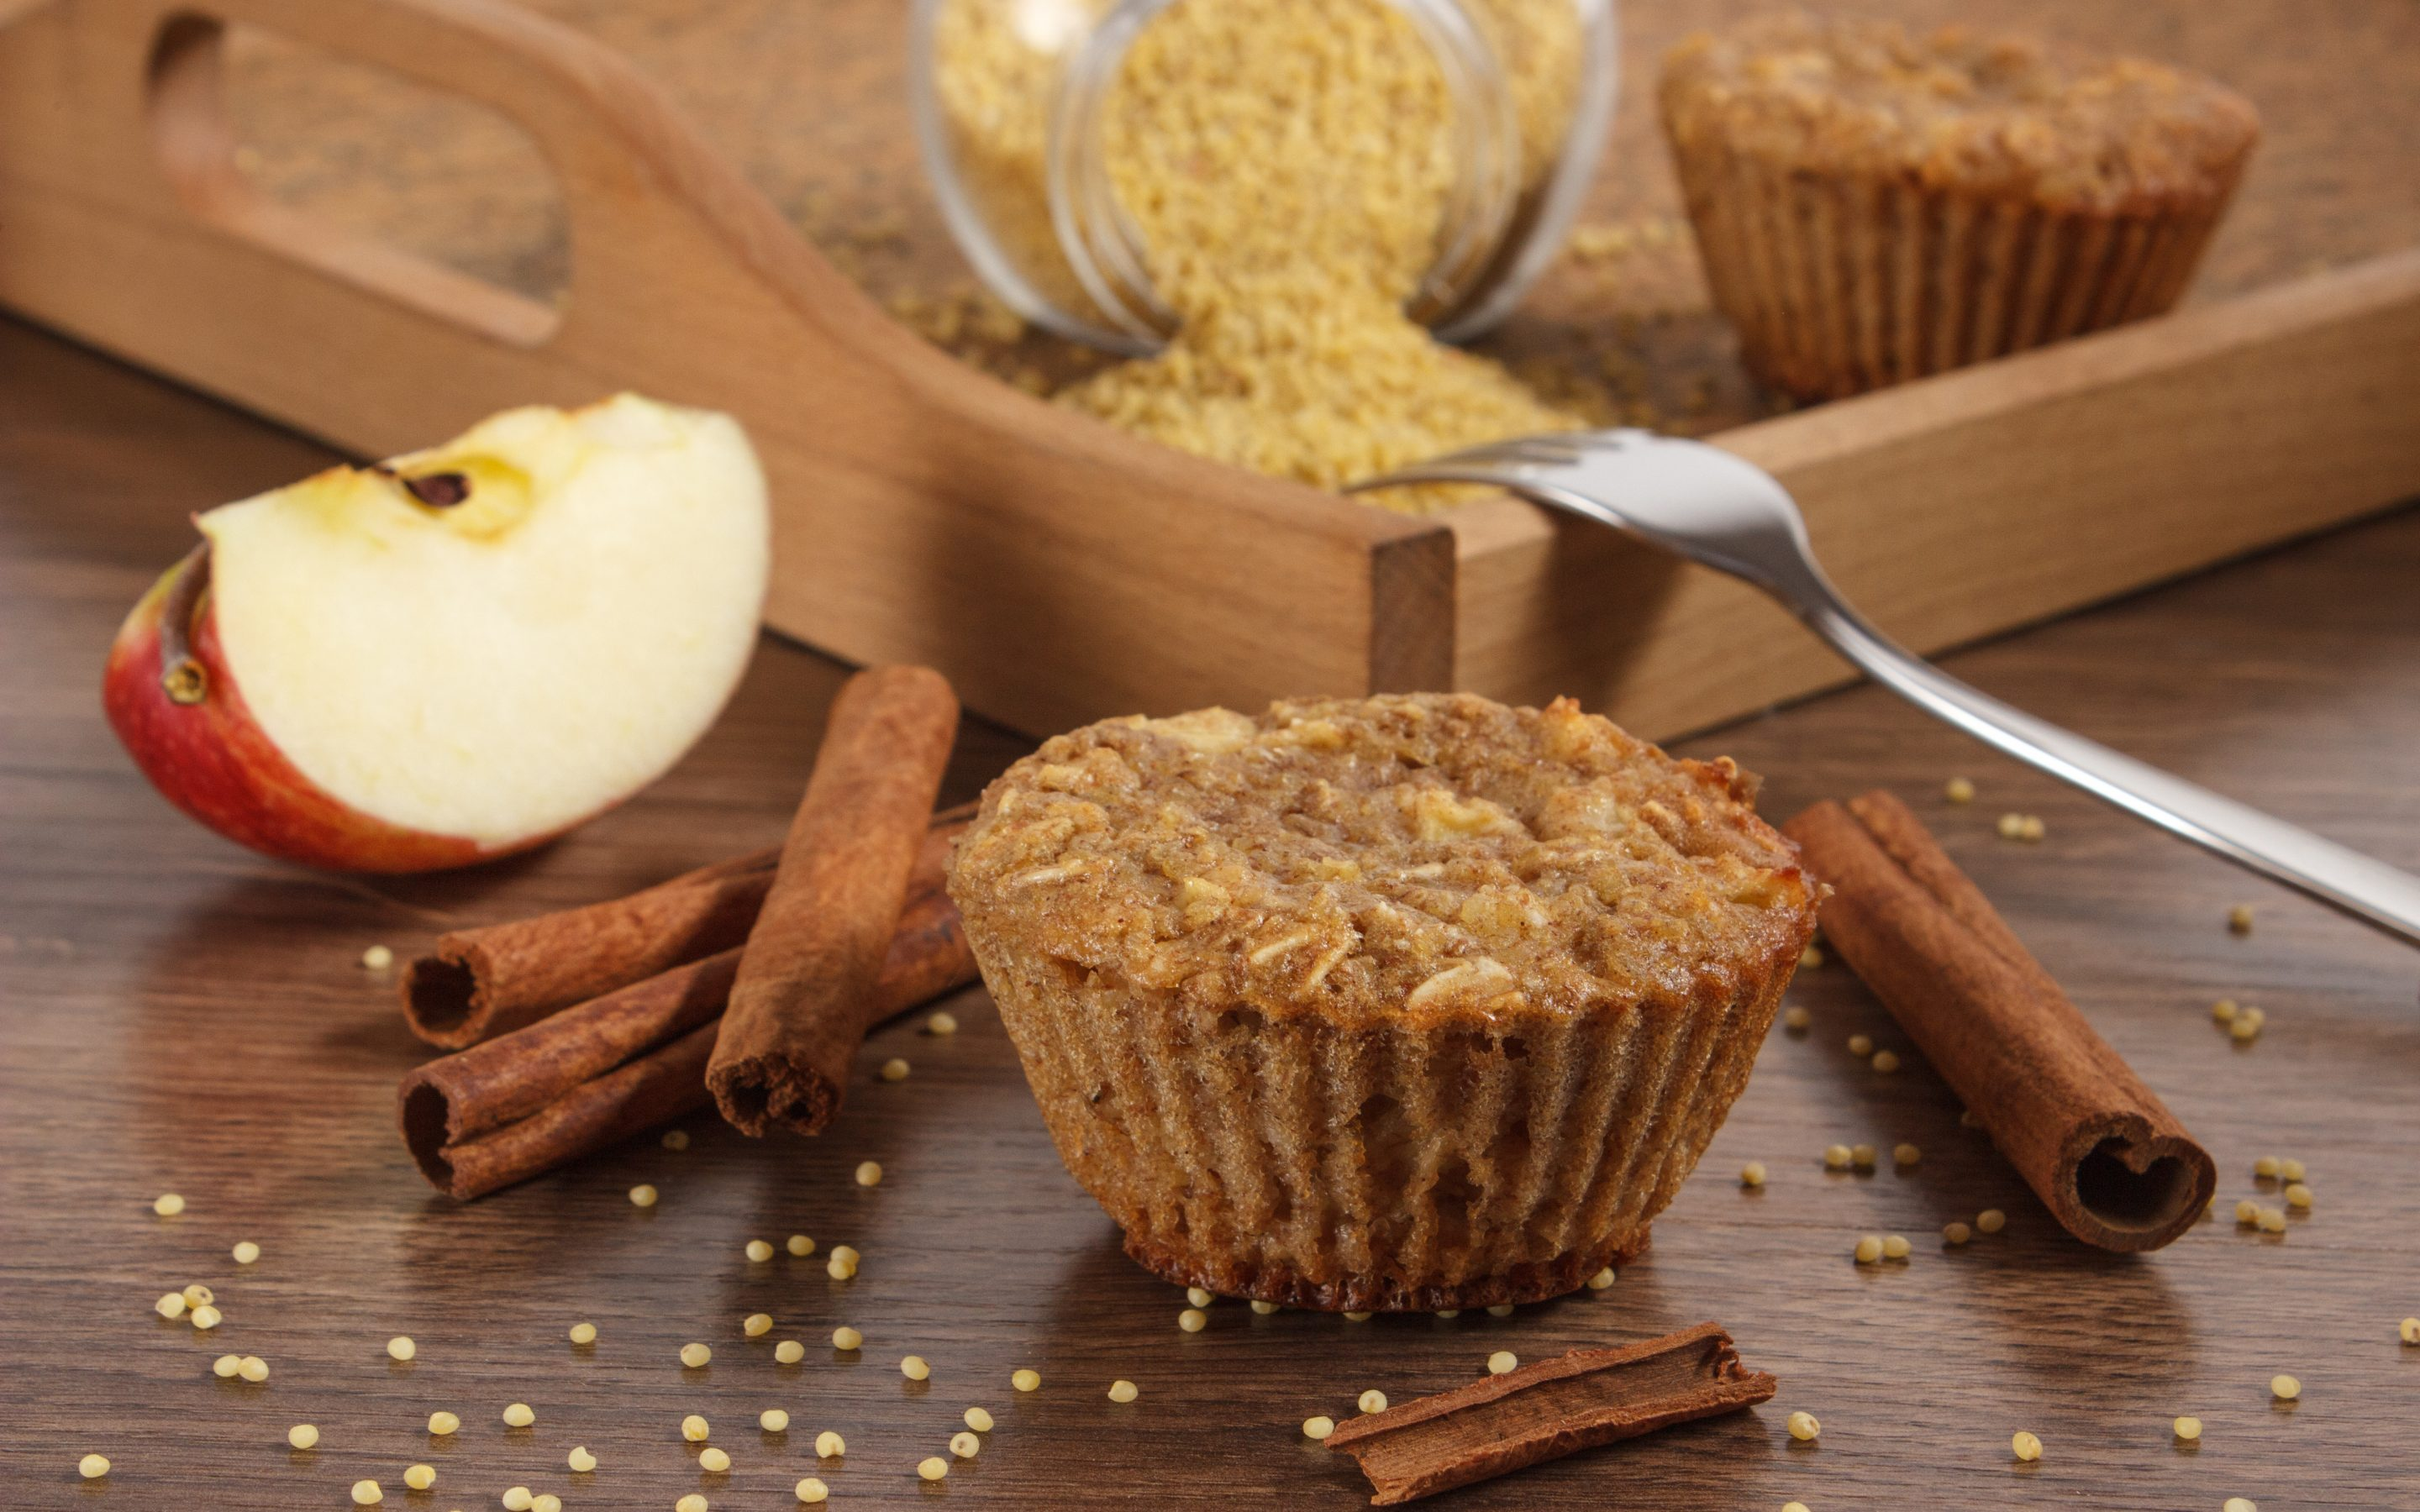 Fresh muffins with millet groats, cinnamon and apple baked with wholemeal flour, delicious healthy dessert